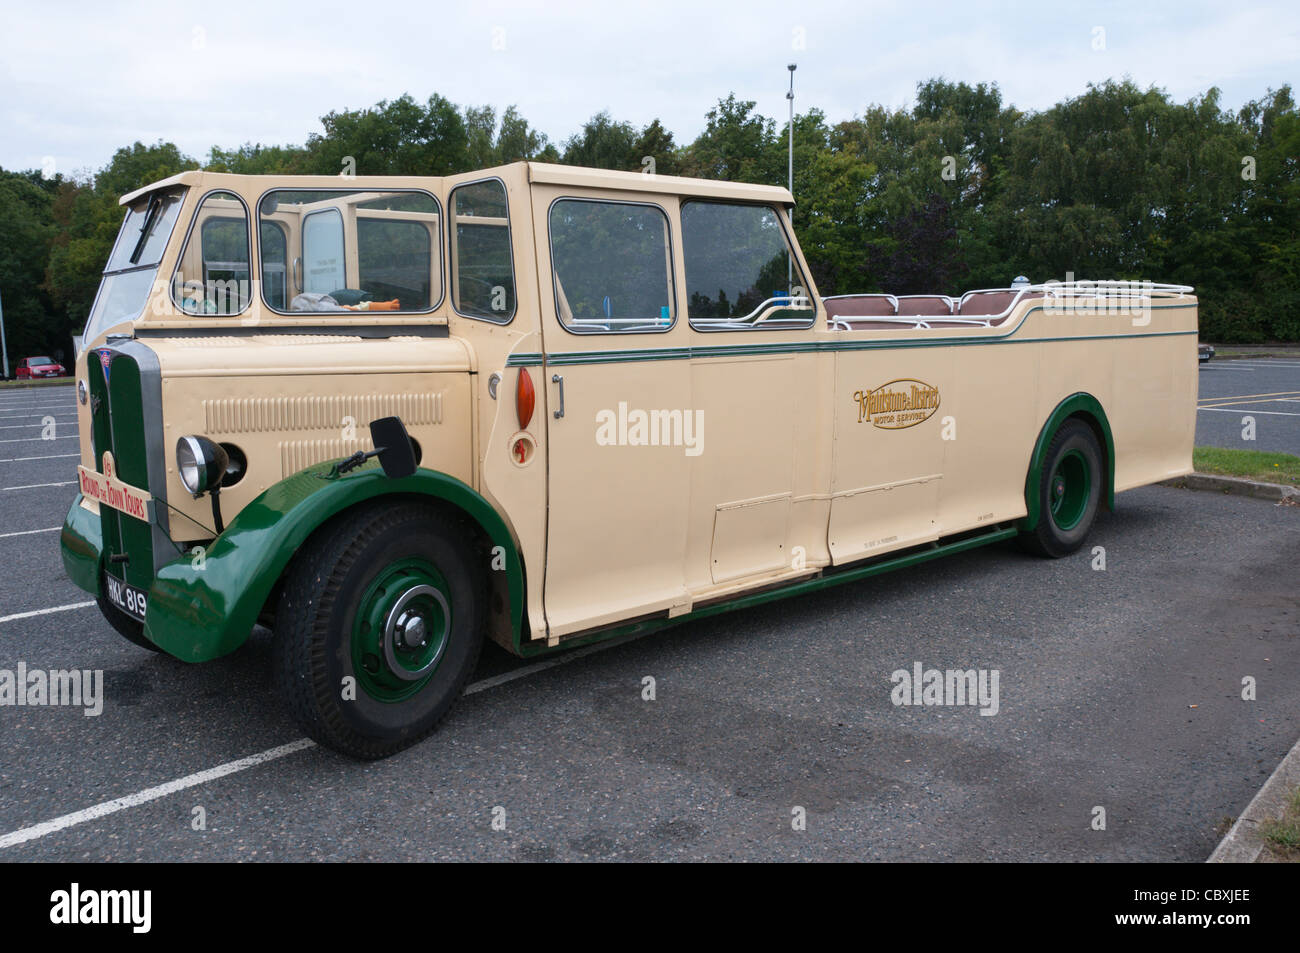 An old Maidstone & District AEC Regal bus that has been converted to an open topped charabanc. - Stock Image